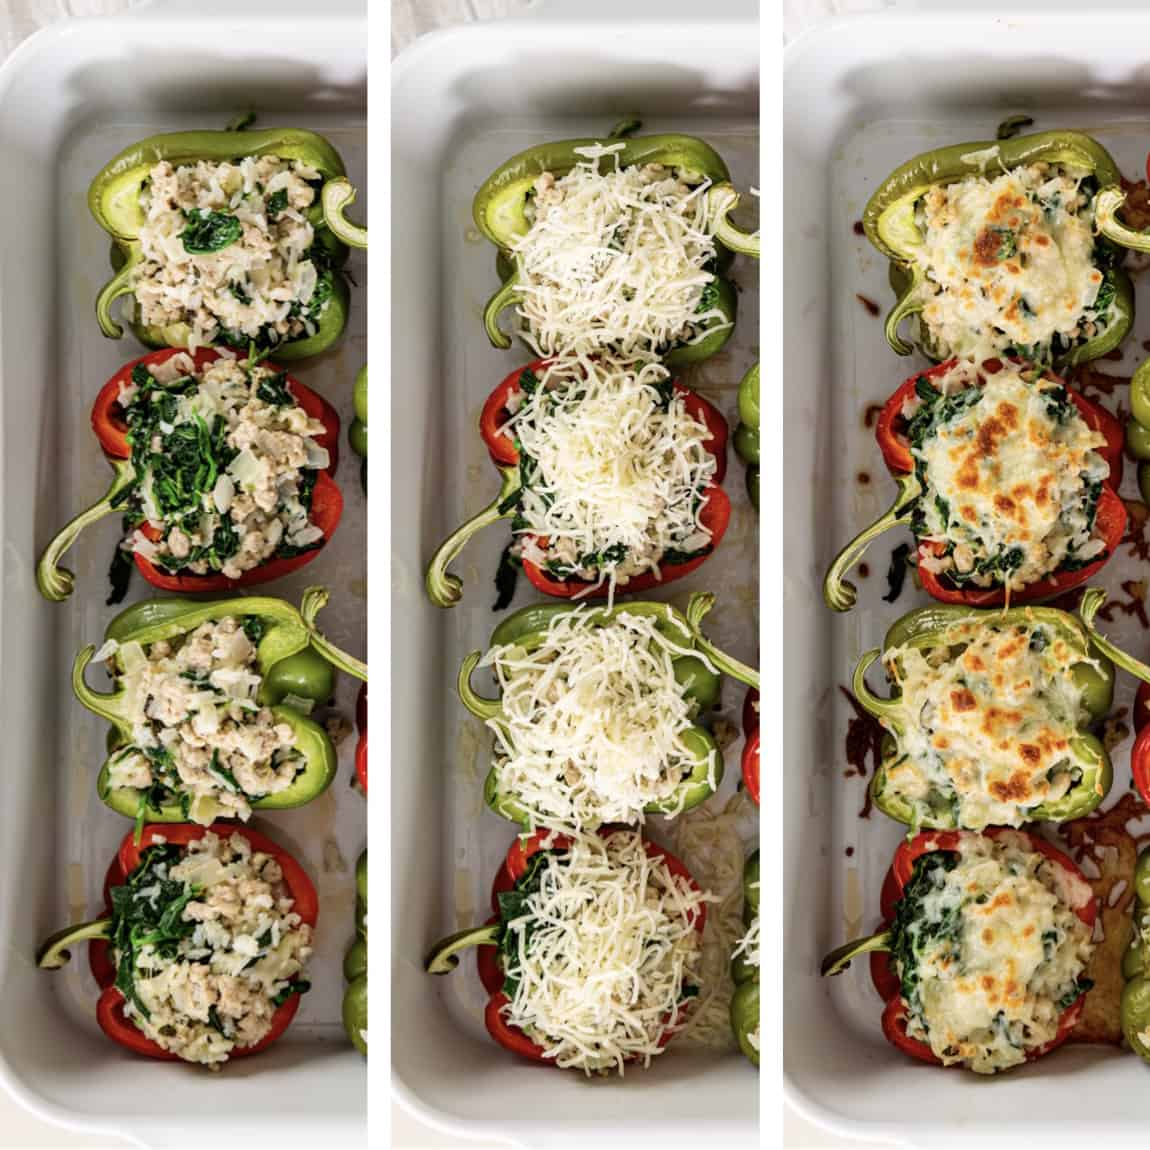 photo collage shows steps of assembling filling into bell peppers for a stuffed peppers recipe